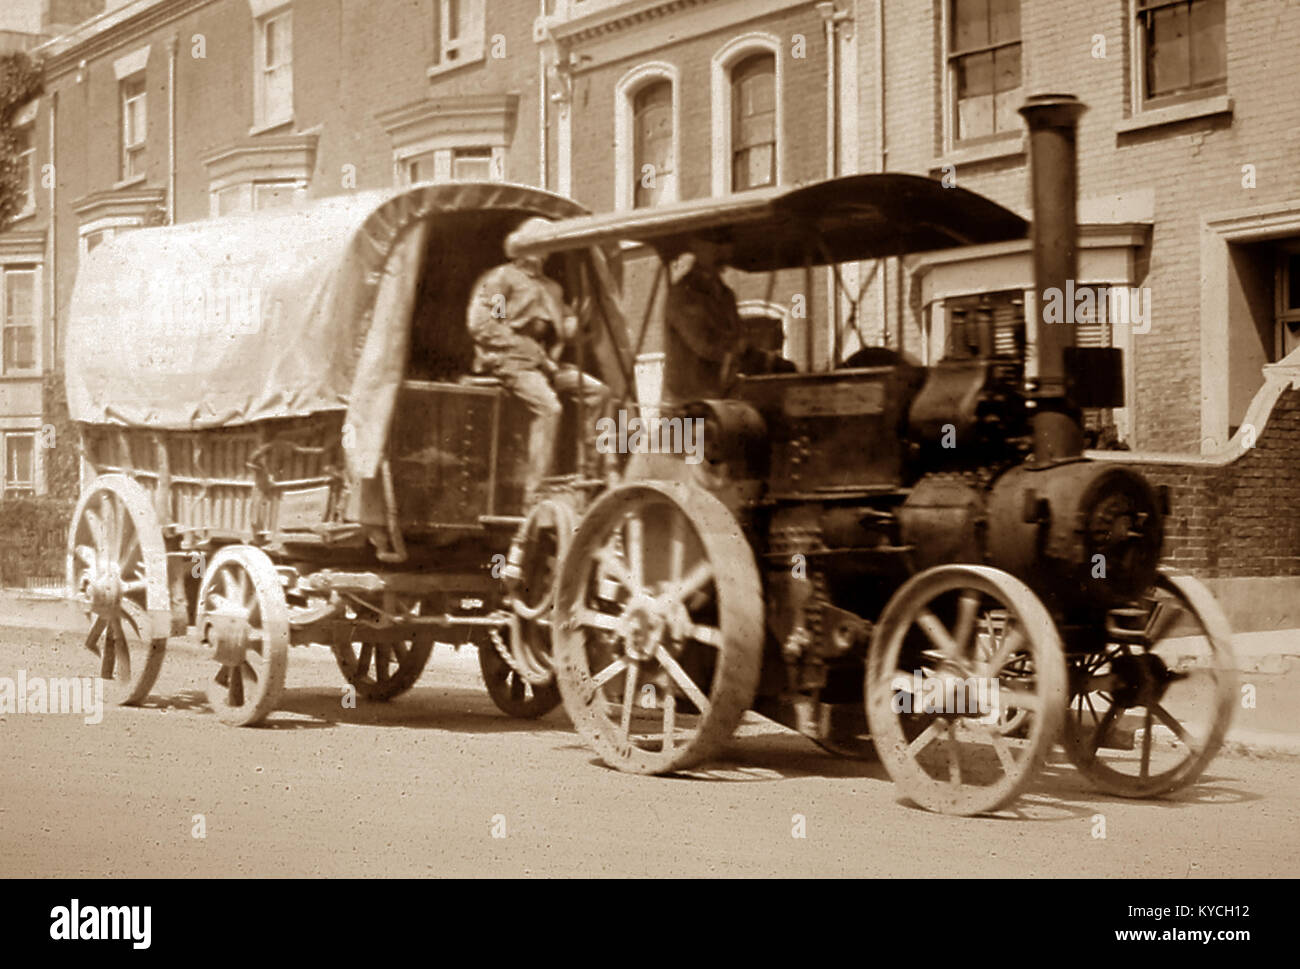 Traction engine and trailer, Victorian period - Stock Image